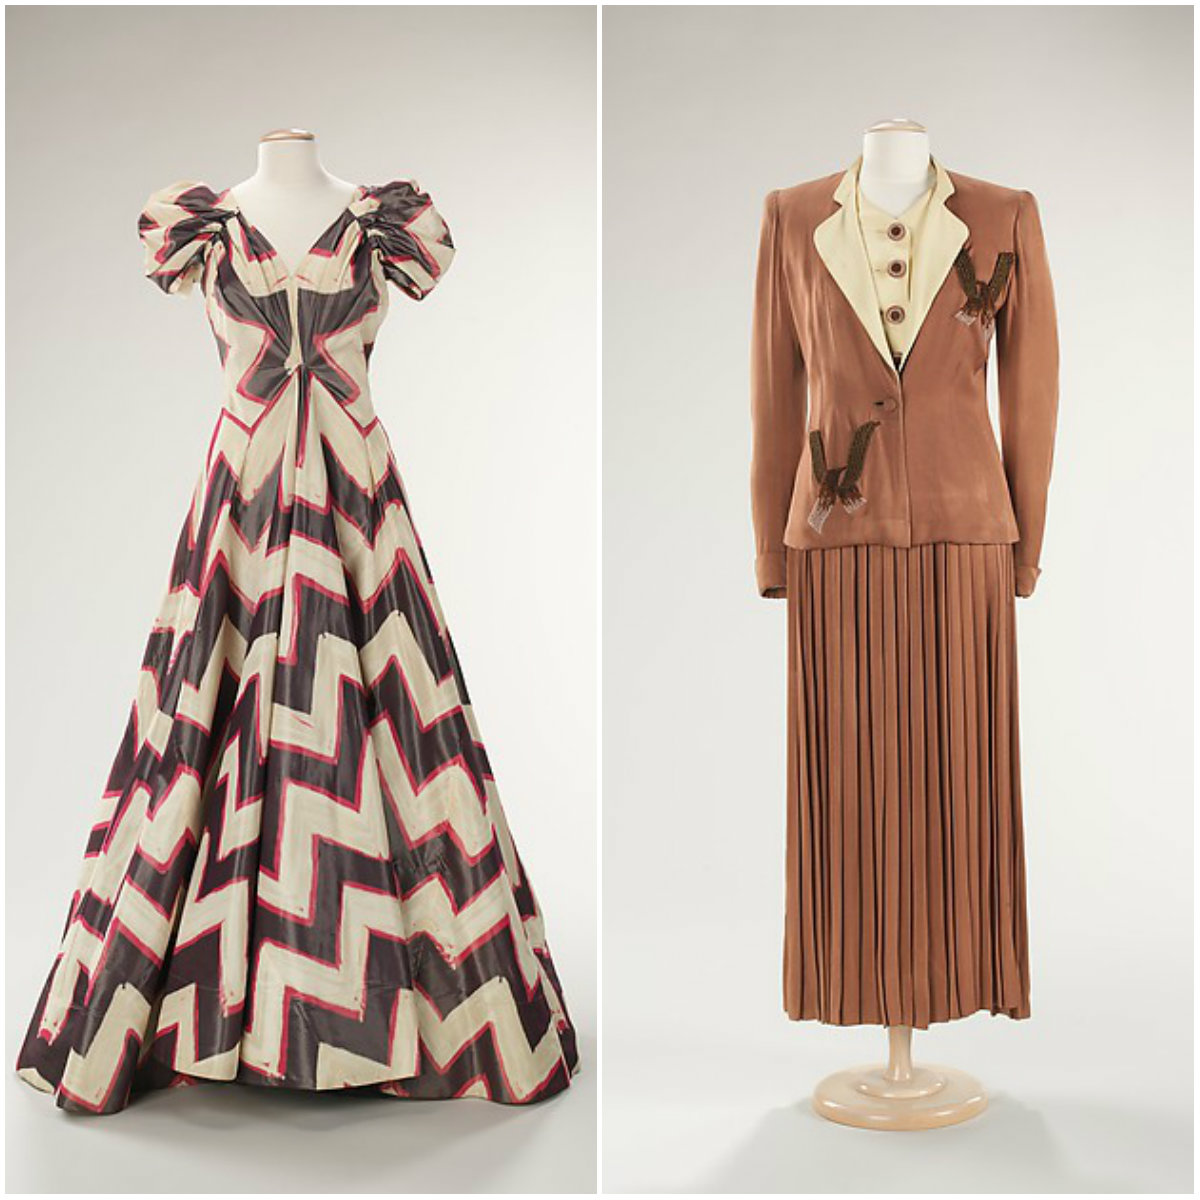 1940s. 'Féminité' dress and Ensemble. Silk, synthetic, beads. metmuseum